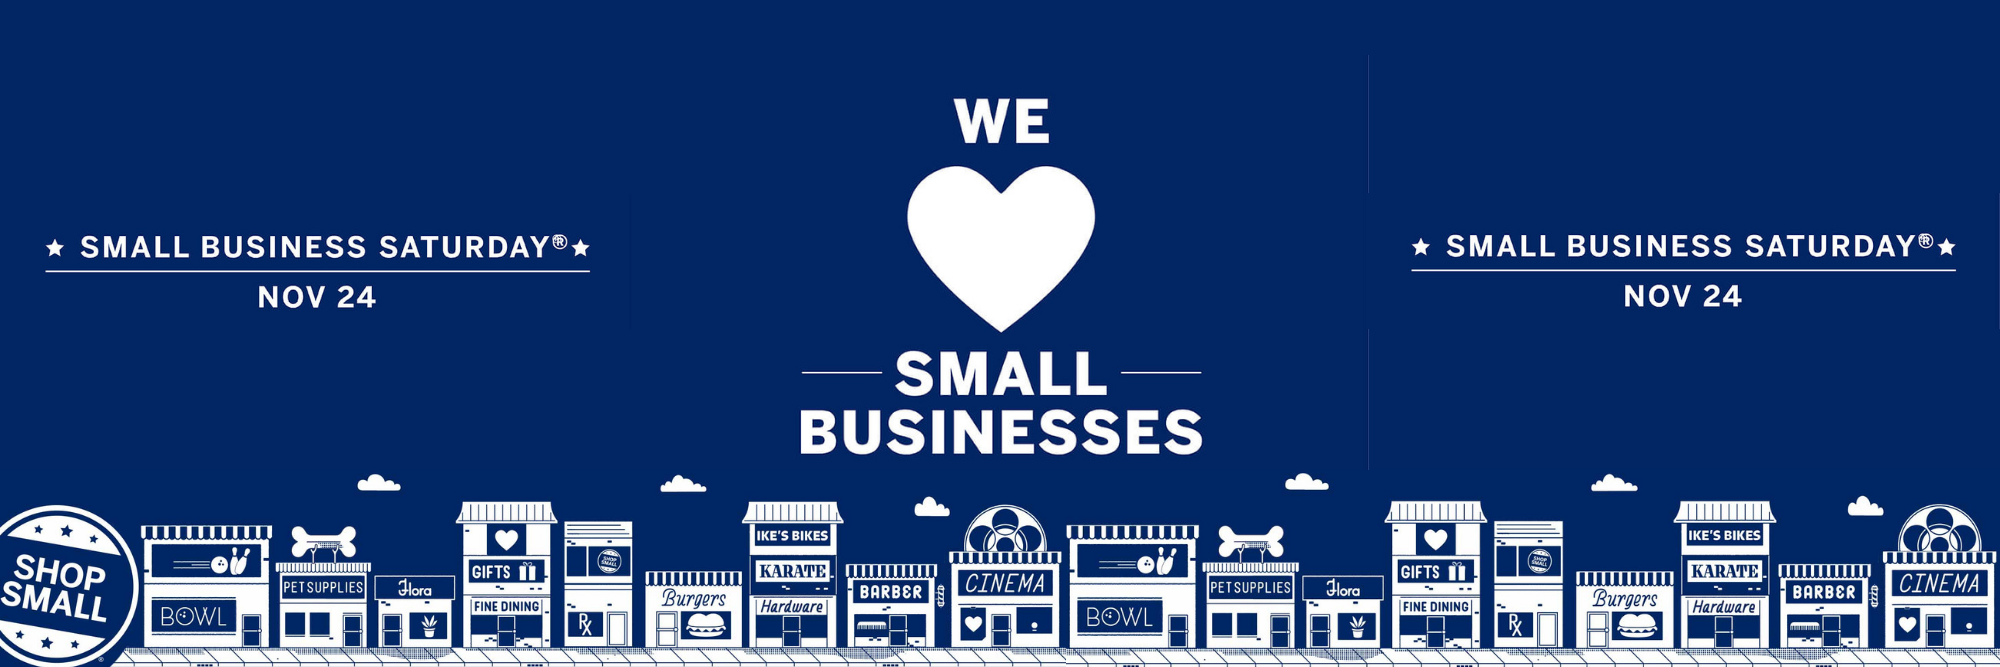 Small Business Saturday Welcome Station